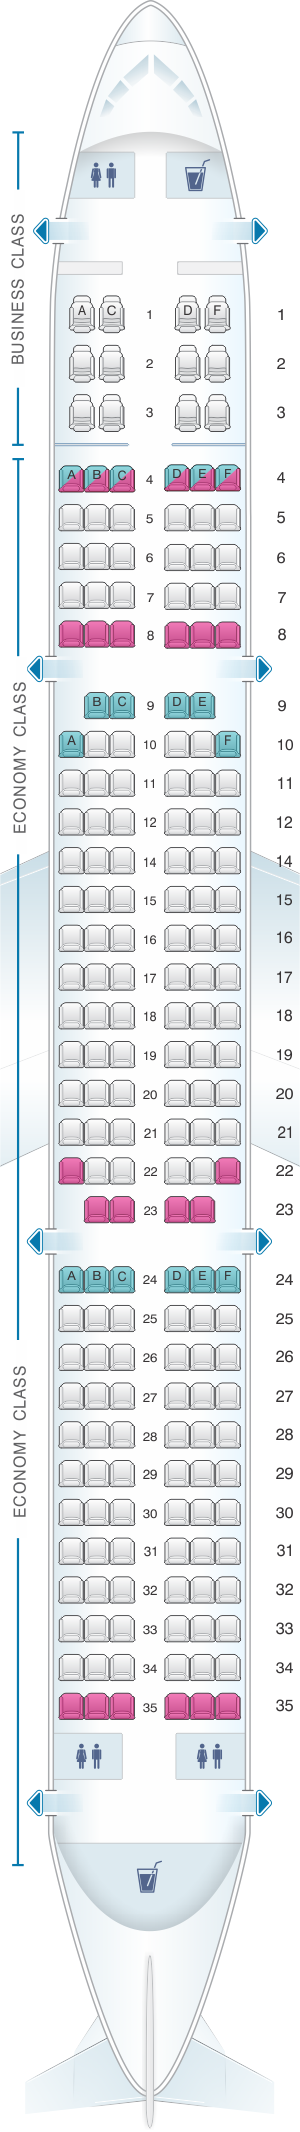 Seat Map Avianca Airbus A321.